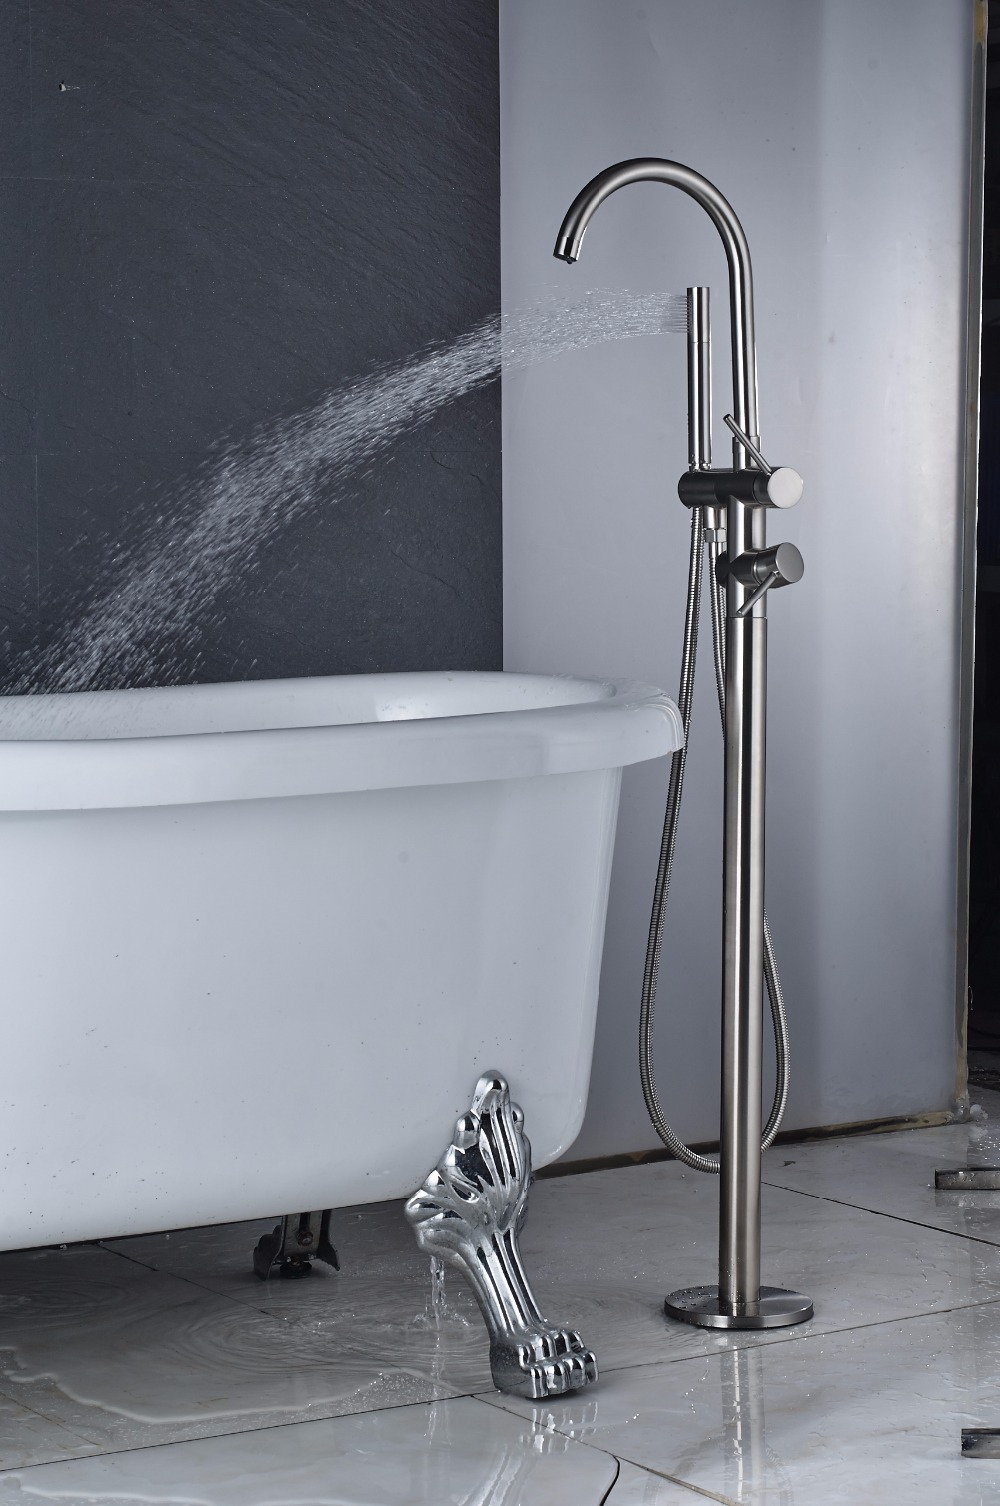 Quyanre Black Nickel Chrome Bathtub Shower Faucet Two Way Floor ...